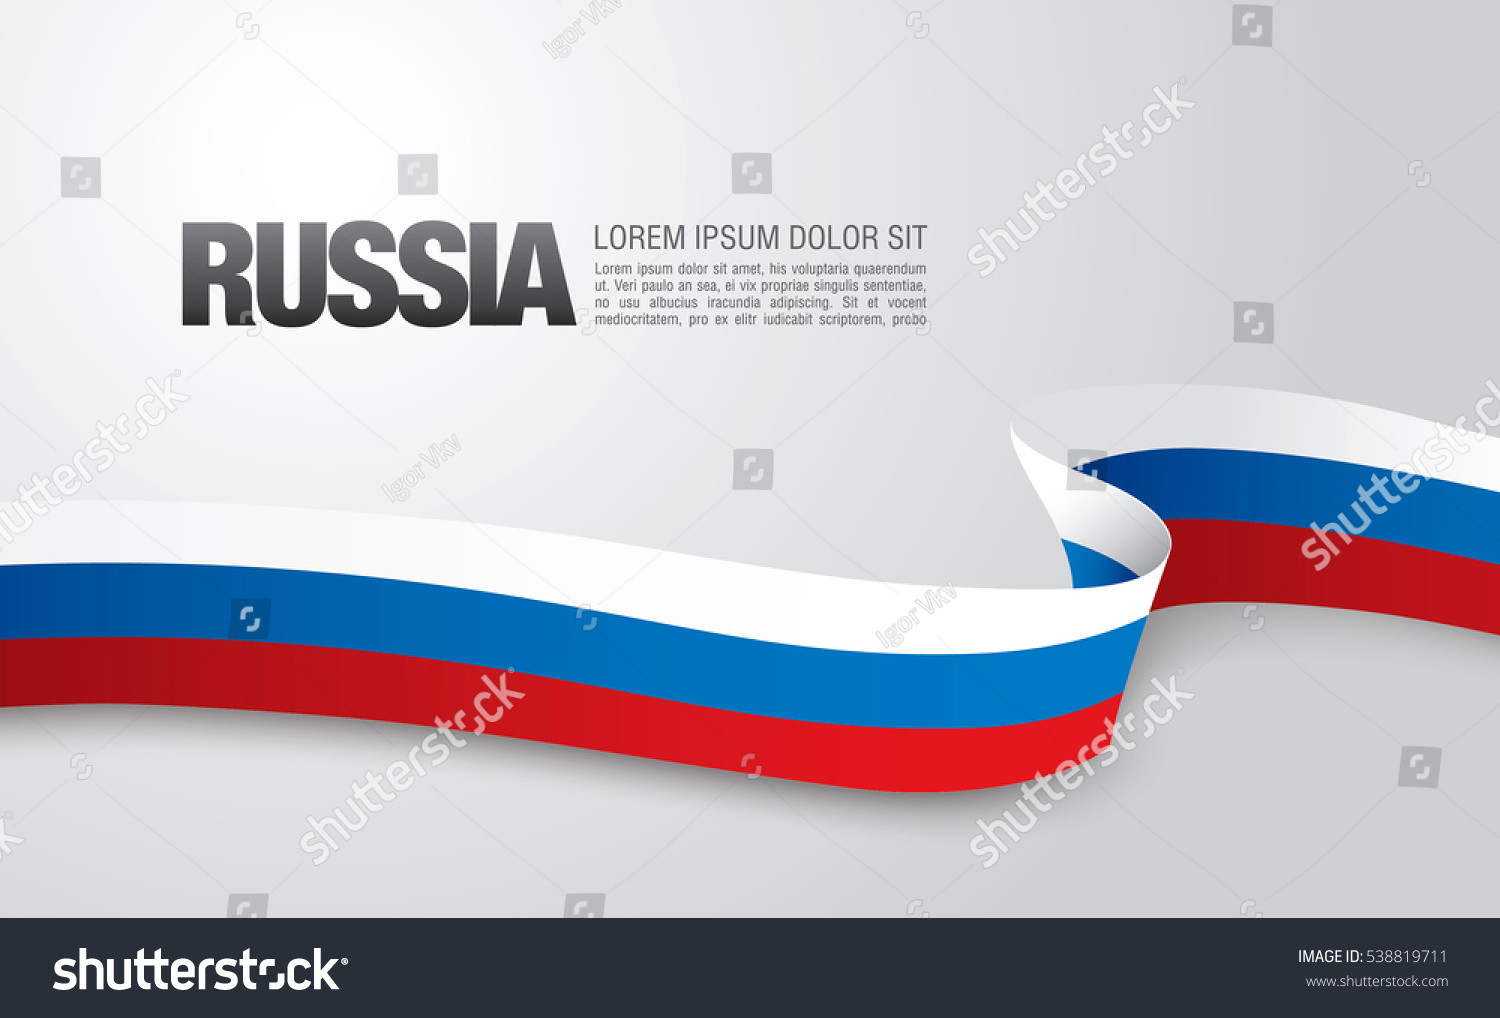 Flag of Russia by Igor Vkv